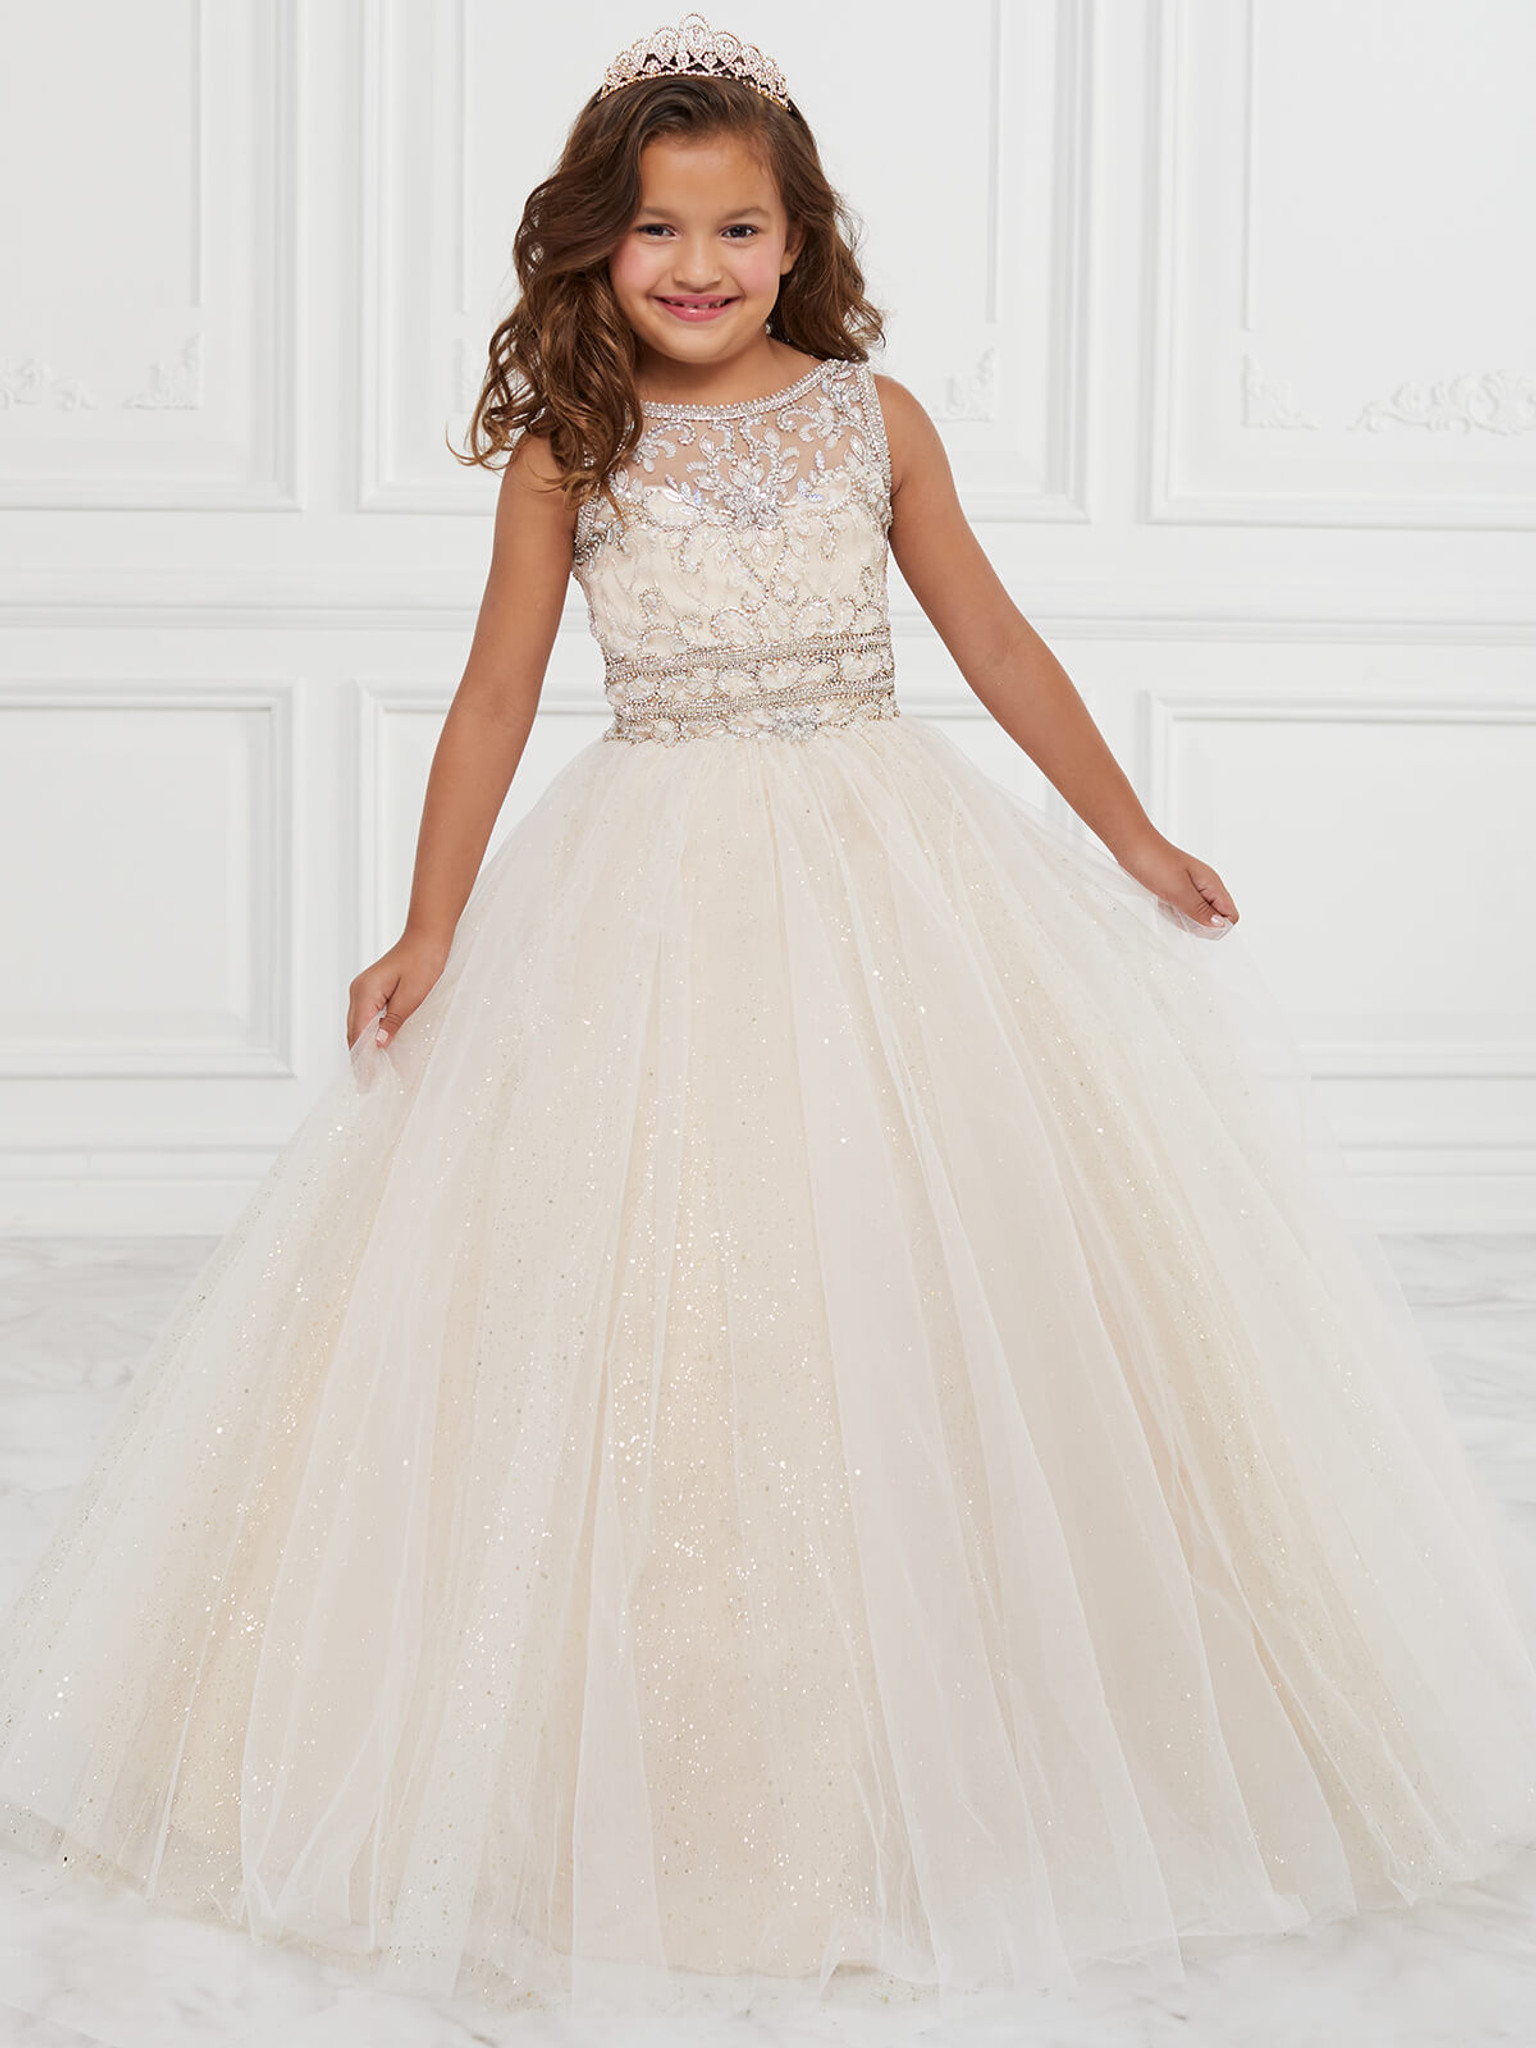 Tulle Tiffany Princess 13601 Pageant Dress PageantDesigns